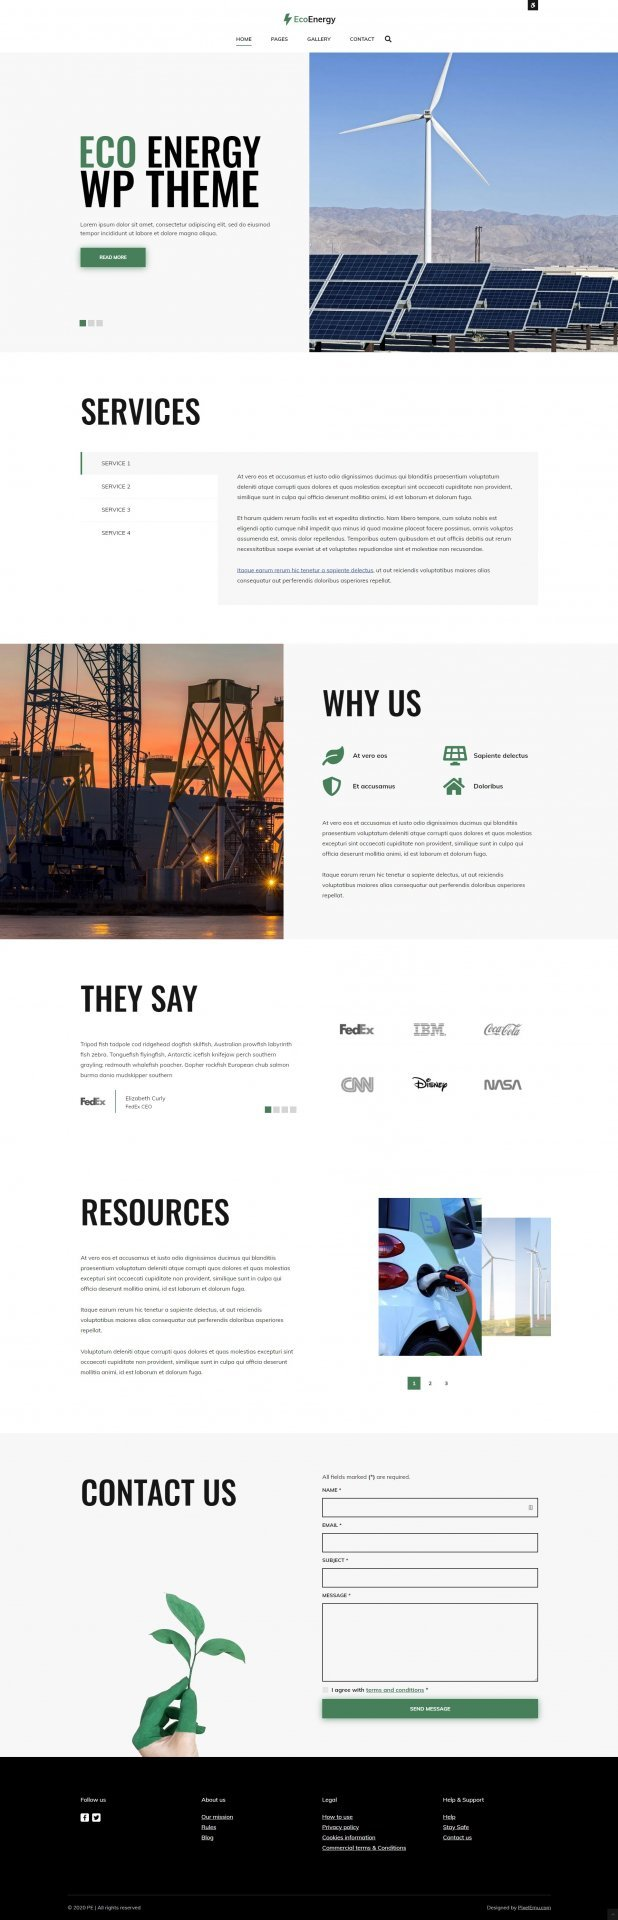 Wordpress Theme: Eco Energy